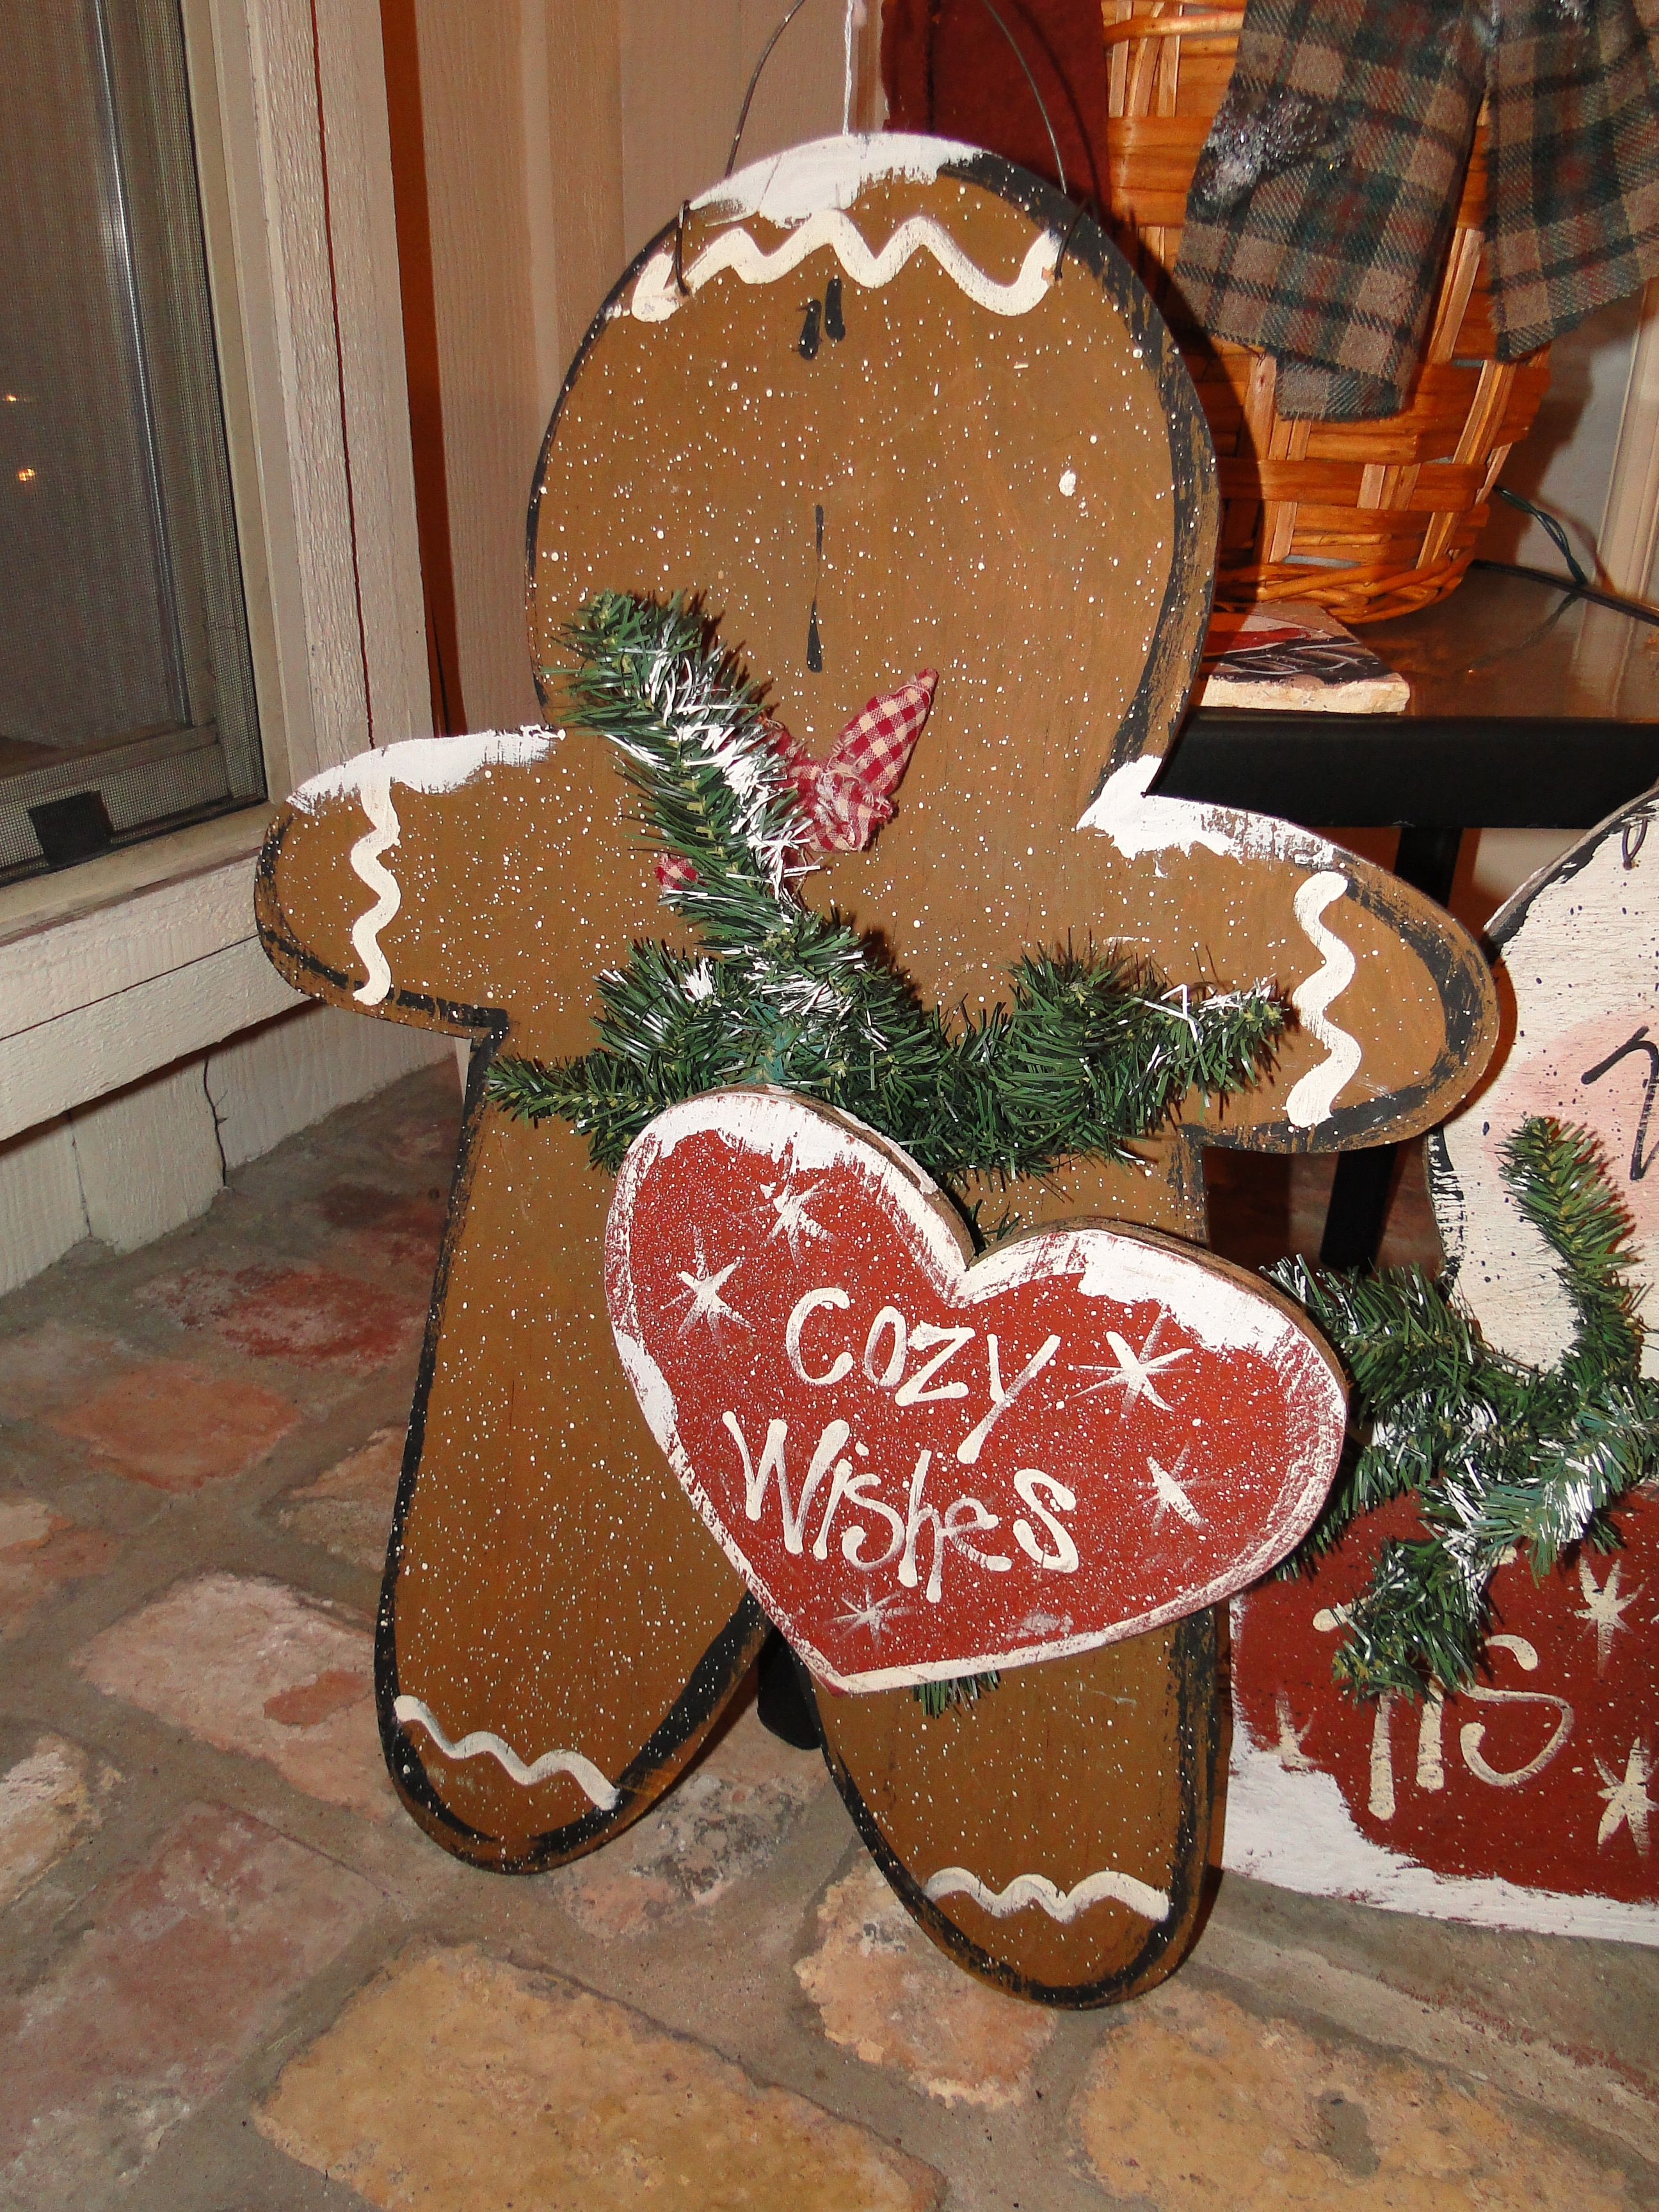 Cute Gingerbread Gingerbread Decorations Xmas Crafts Gingerbread Crafts